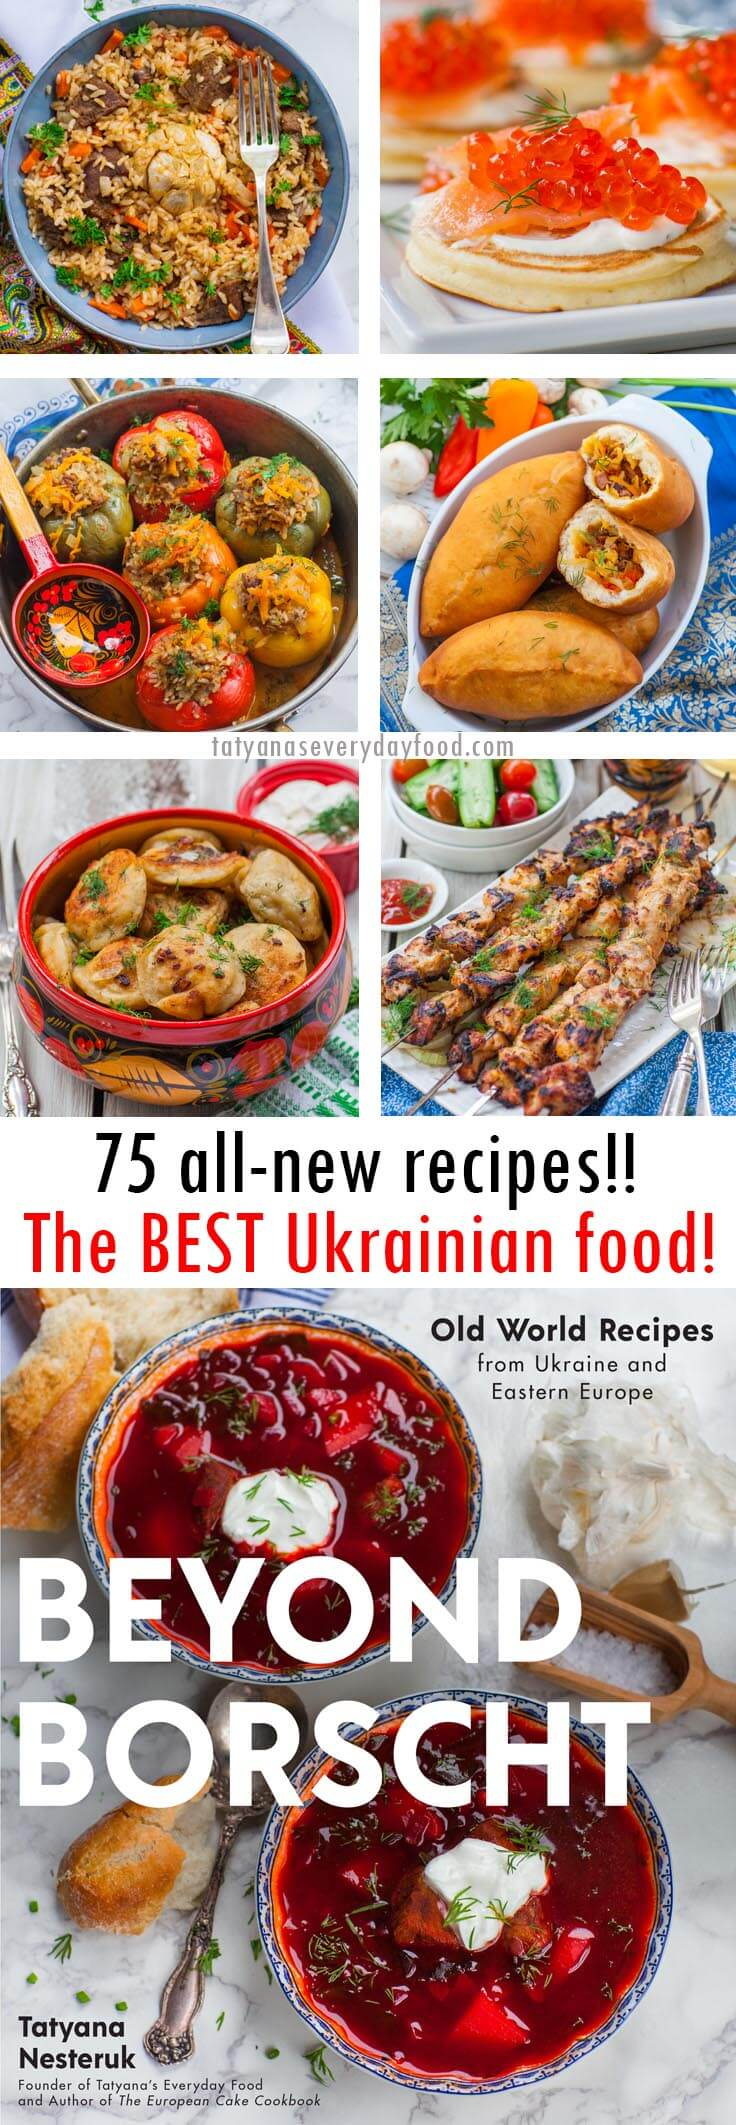 Beyond Borscht Ukrainian cookbook